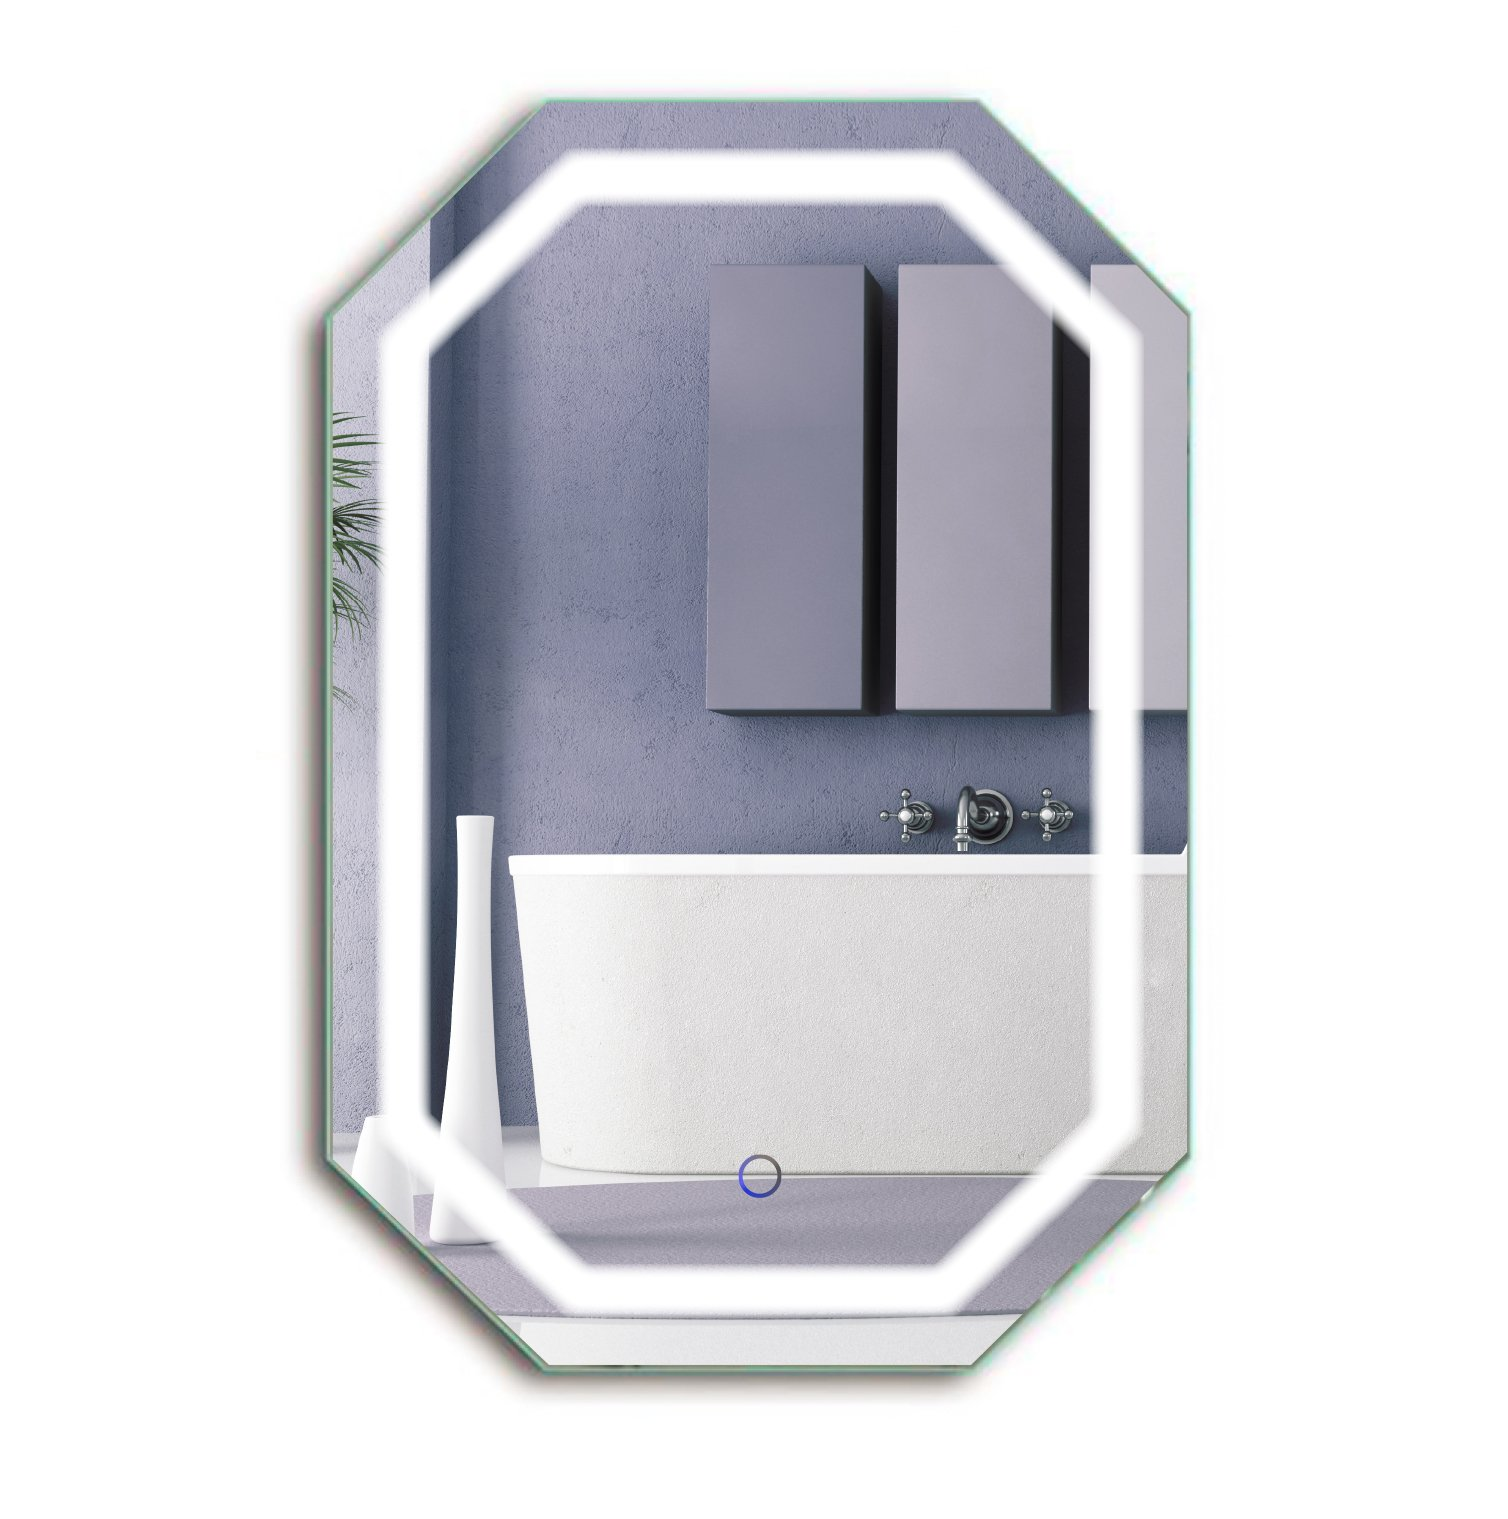 Octagon LED Bathrom Mirror 20 Inch X 30 Inch | Lighted Wall Mount Vanity Mirror includes Defogger & Dimmer | Vertical or Horizontal Install